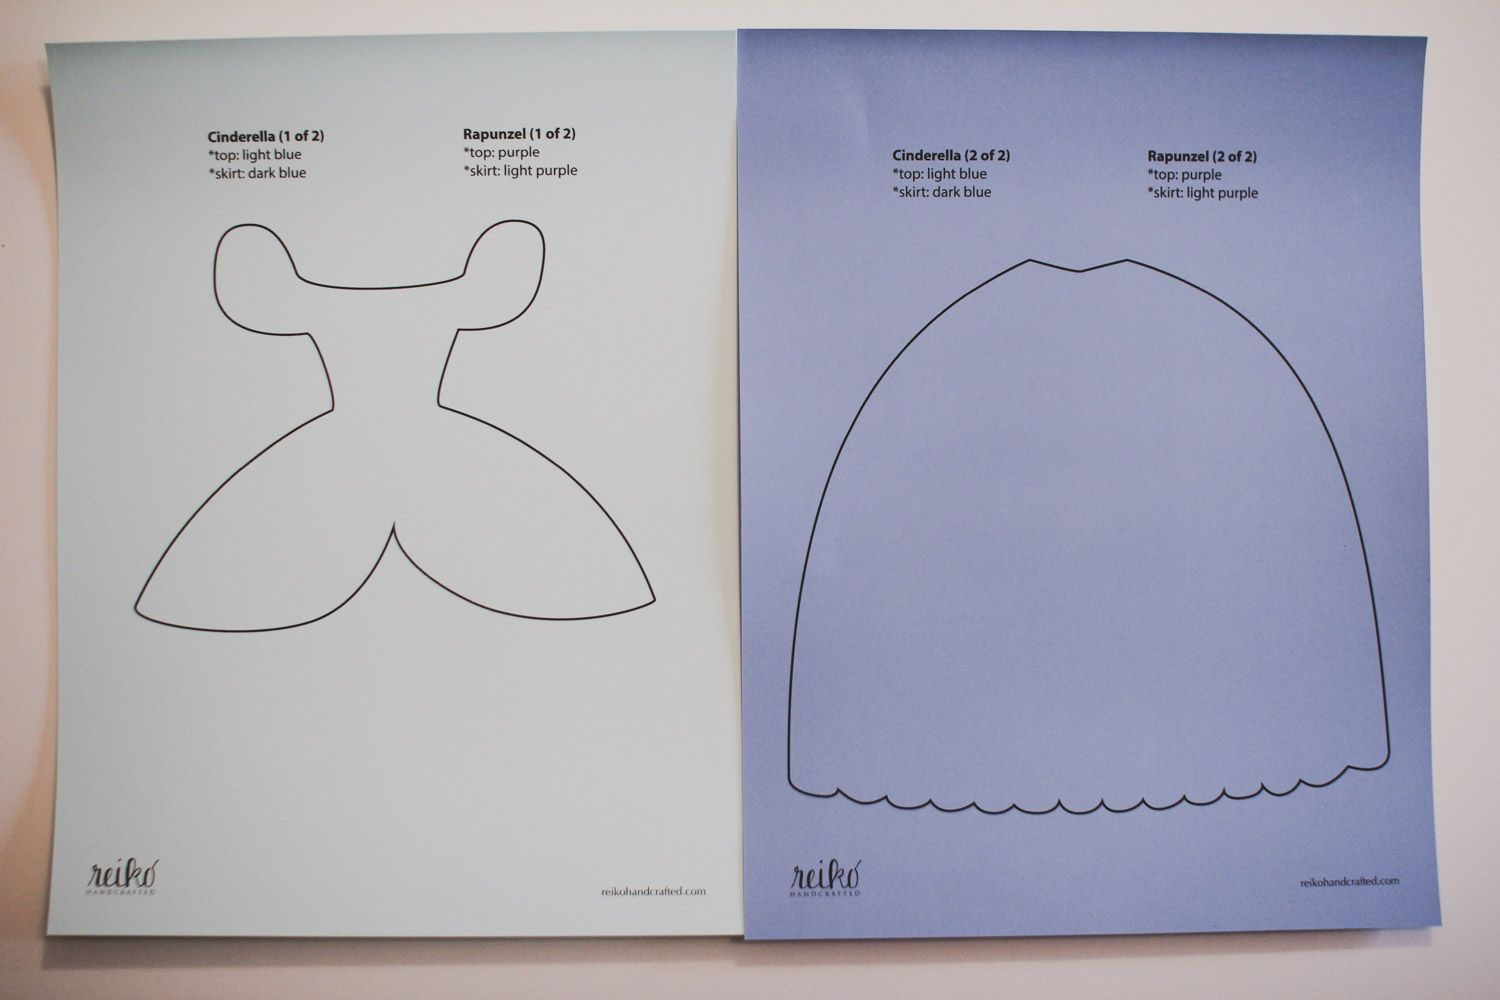 8 5 X 11 Inch Paper Dress Template For Cinderella From Disney S Cinderella Rapunzel From Disney S Tangl Dress Templates Disney Princess Dresses Paper Template